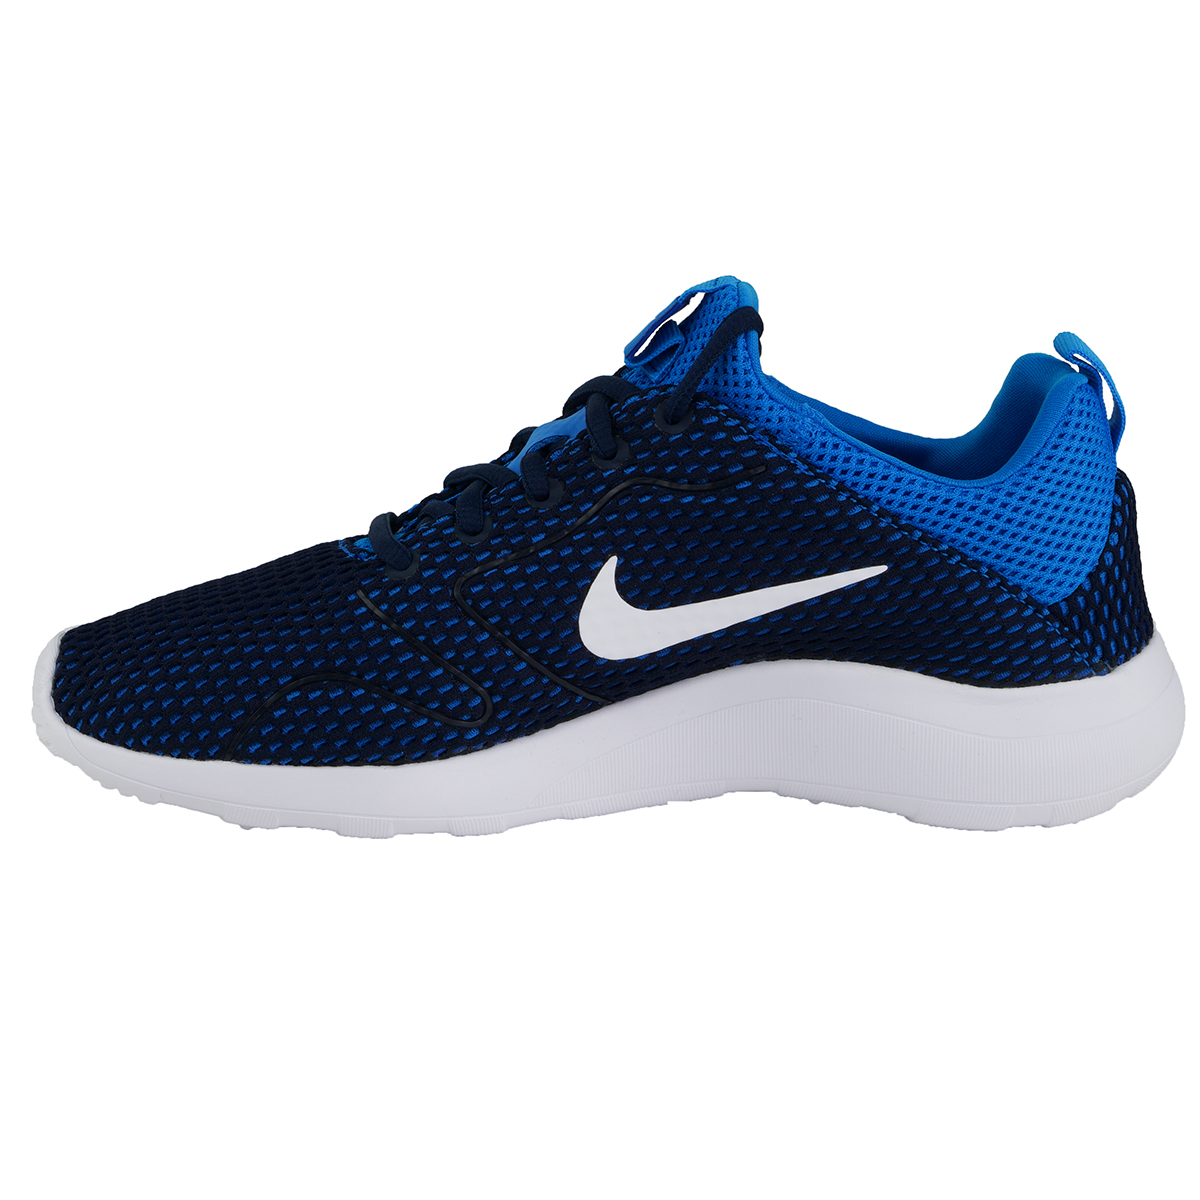 reputable site c5661 377a6 Nike-Men-039-s-Kaishi-2-0-SE-